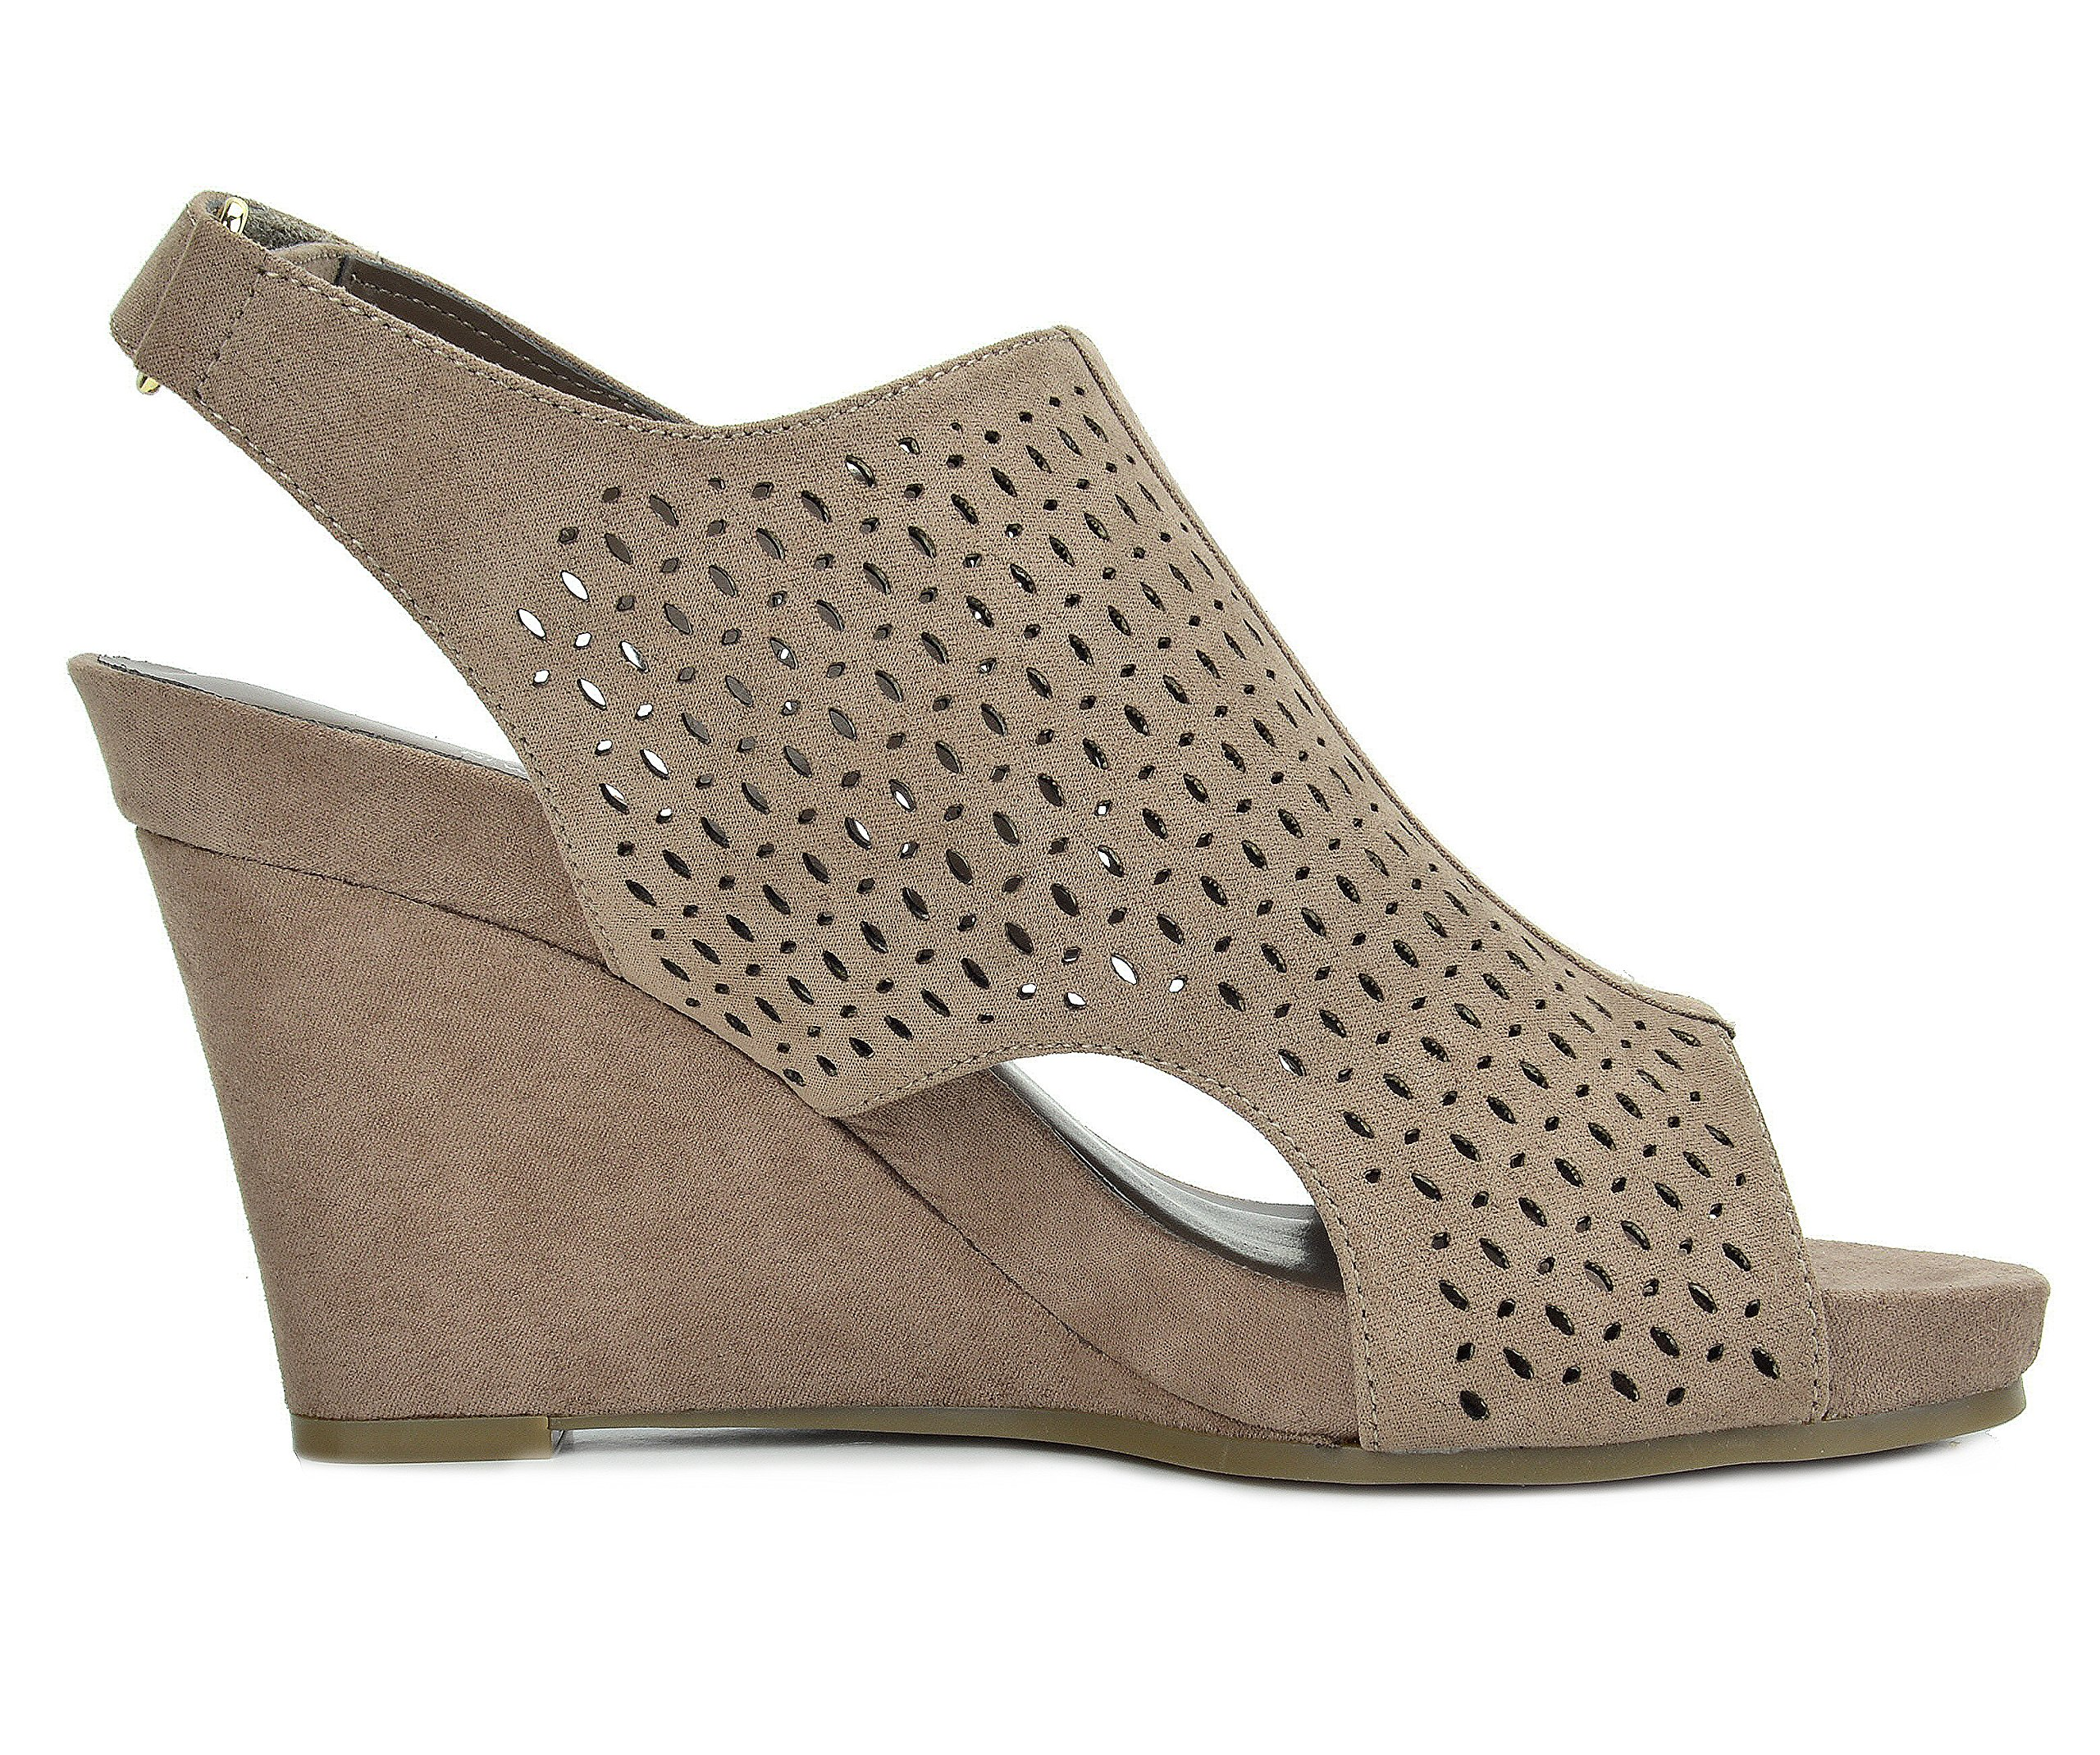 TOETOS Women's Solsoft-6 Taupe Mid Heel Platform Wedges Sandals - 9.5 M US by TOETOS (Image #4)